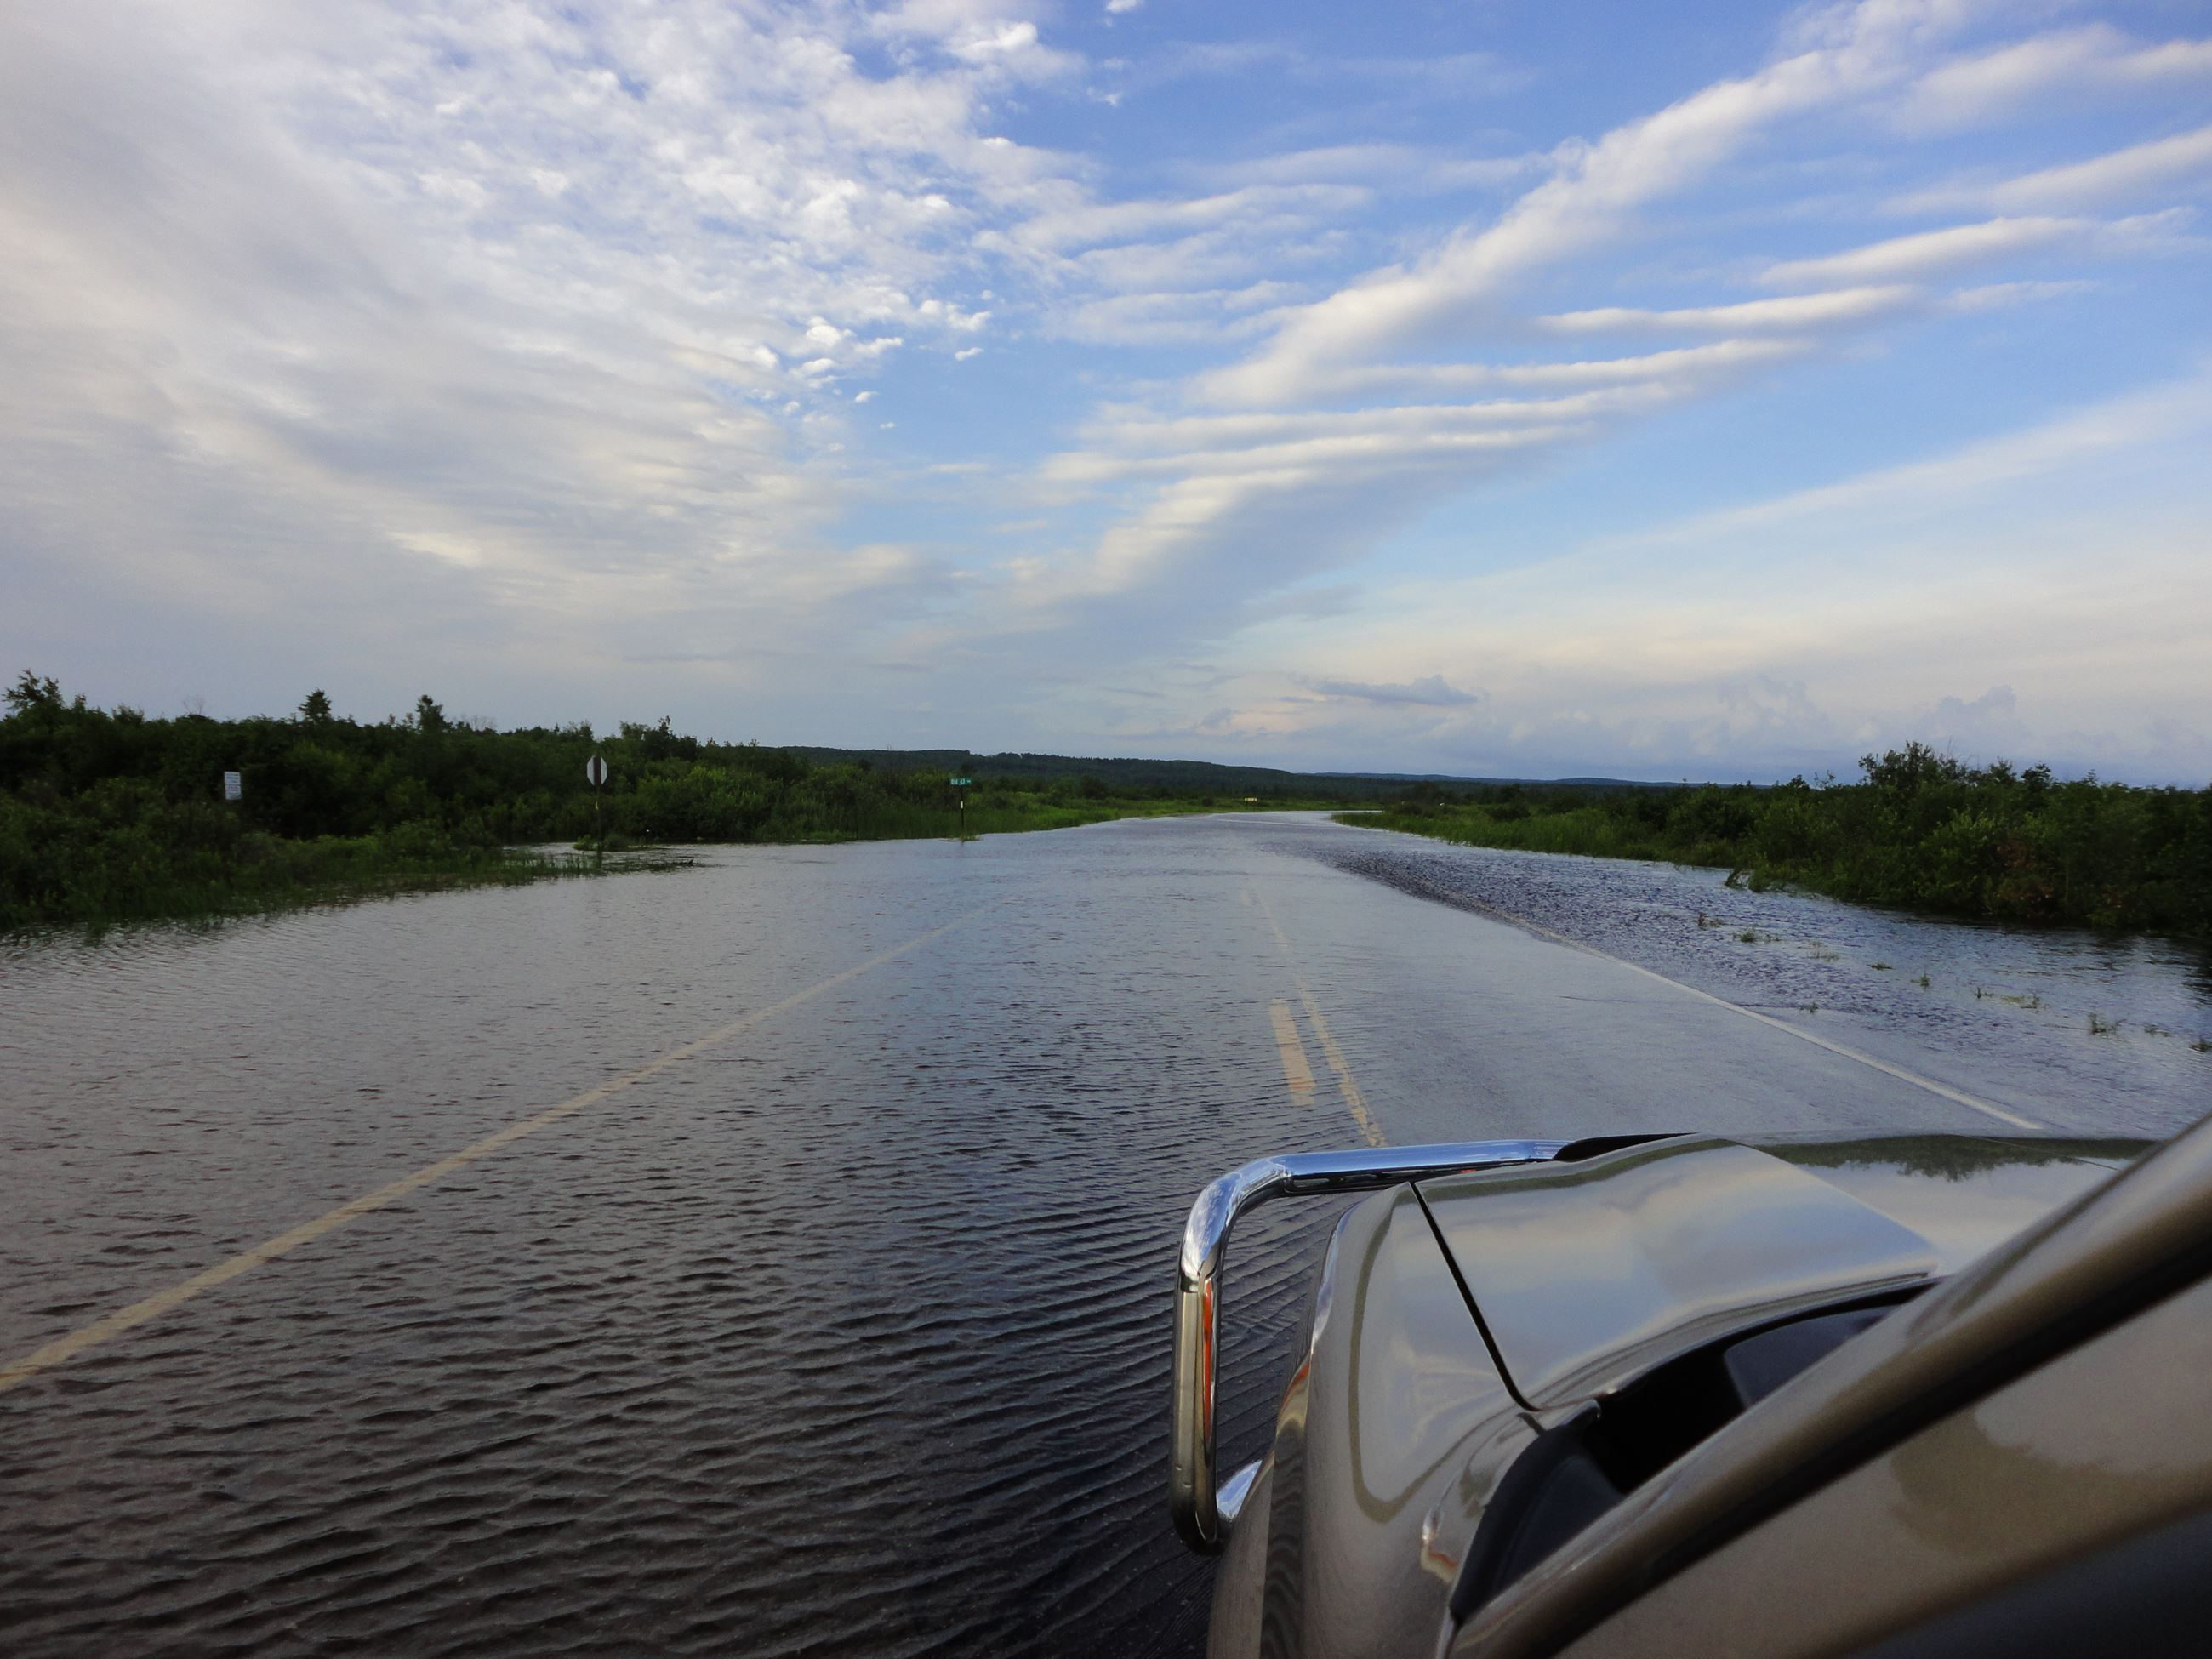 Highway 63 is mostly underwater by Old 63